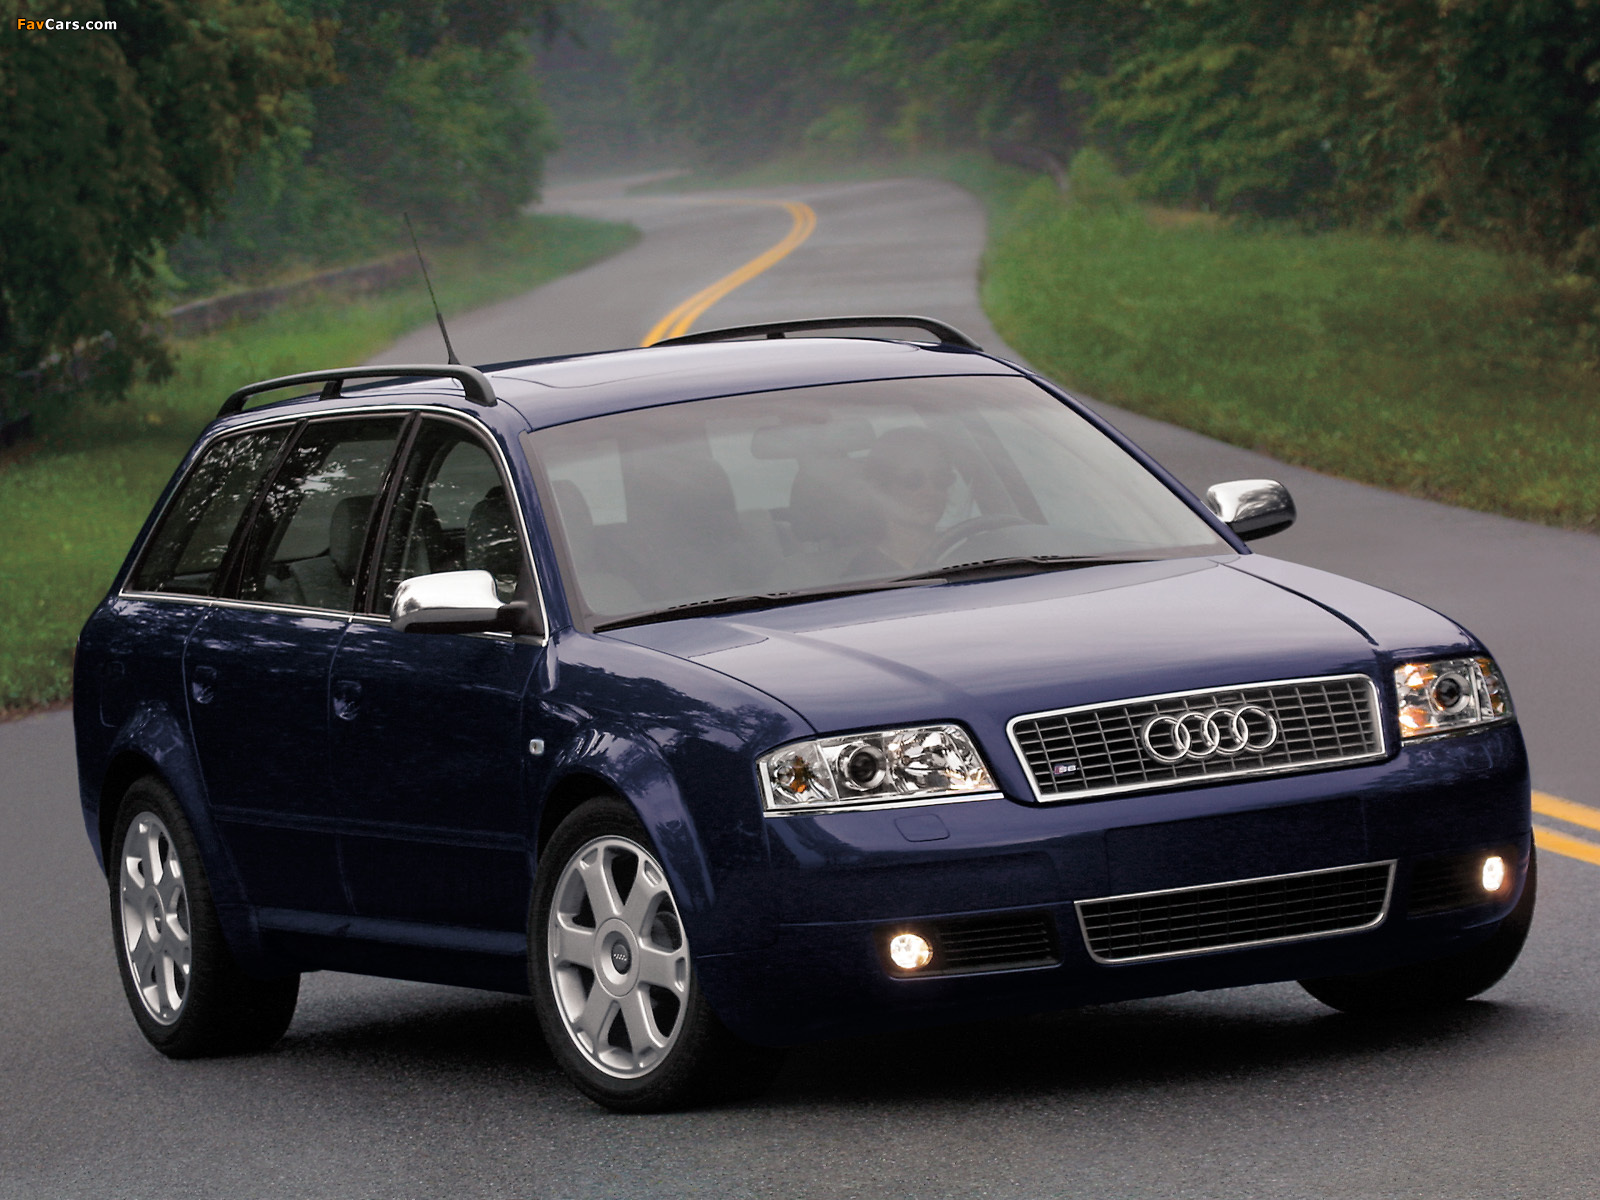 audi s6 avant us spec 4b c5 1999 2004 wallpapers 1600x1200. Black Bedroom Furniture Sets. Home Design Ideas